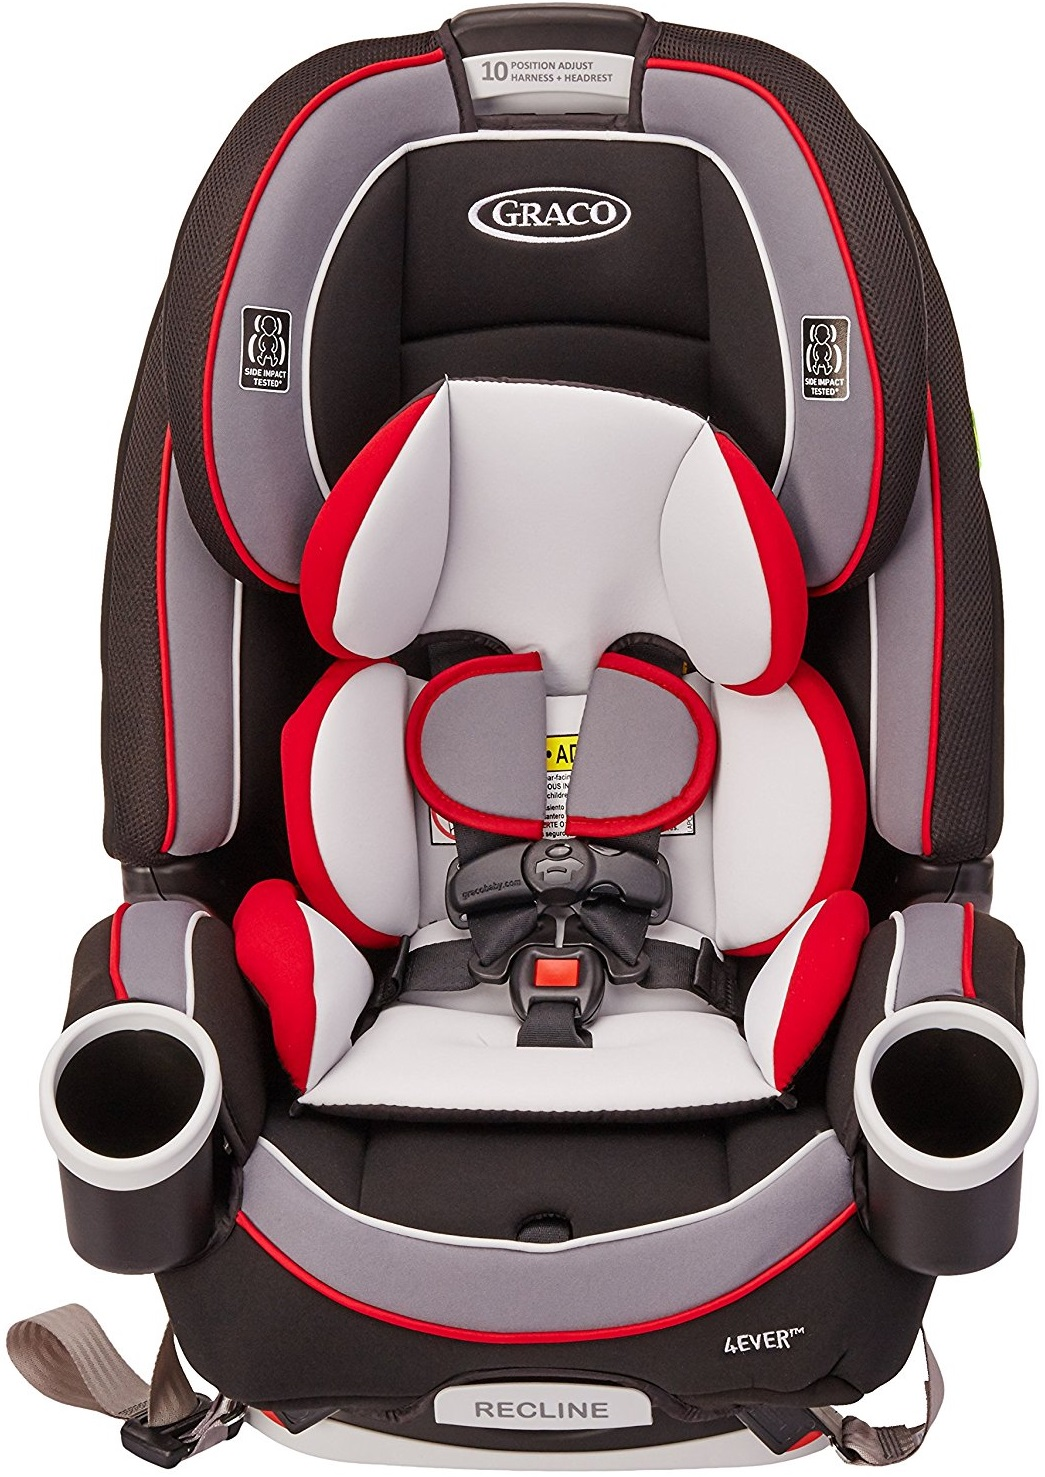 Britax Car Seat Vs Graco Graco Car Seats Comparison